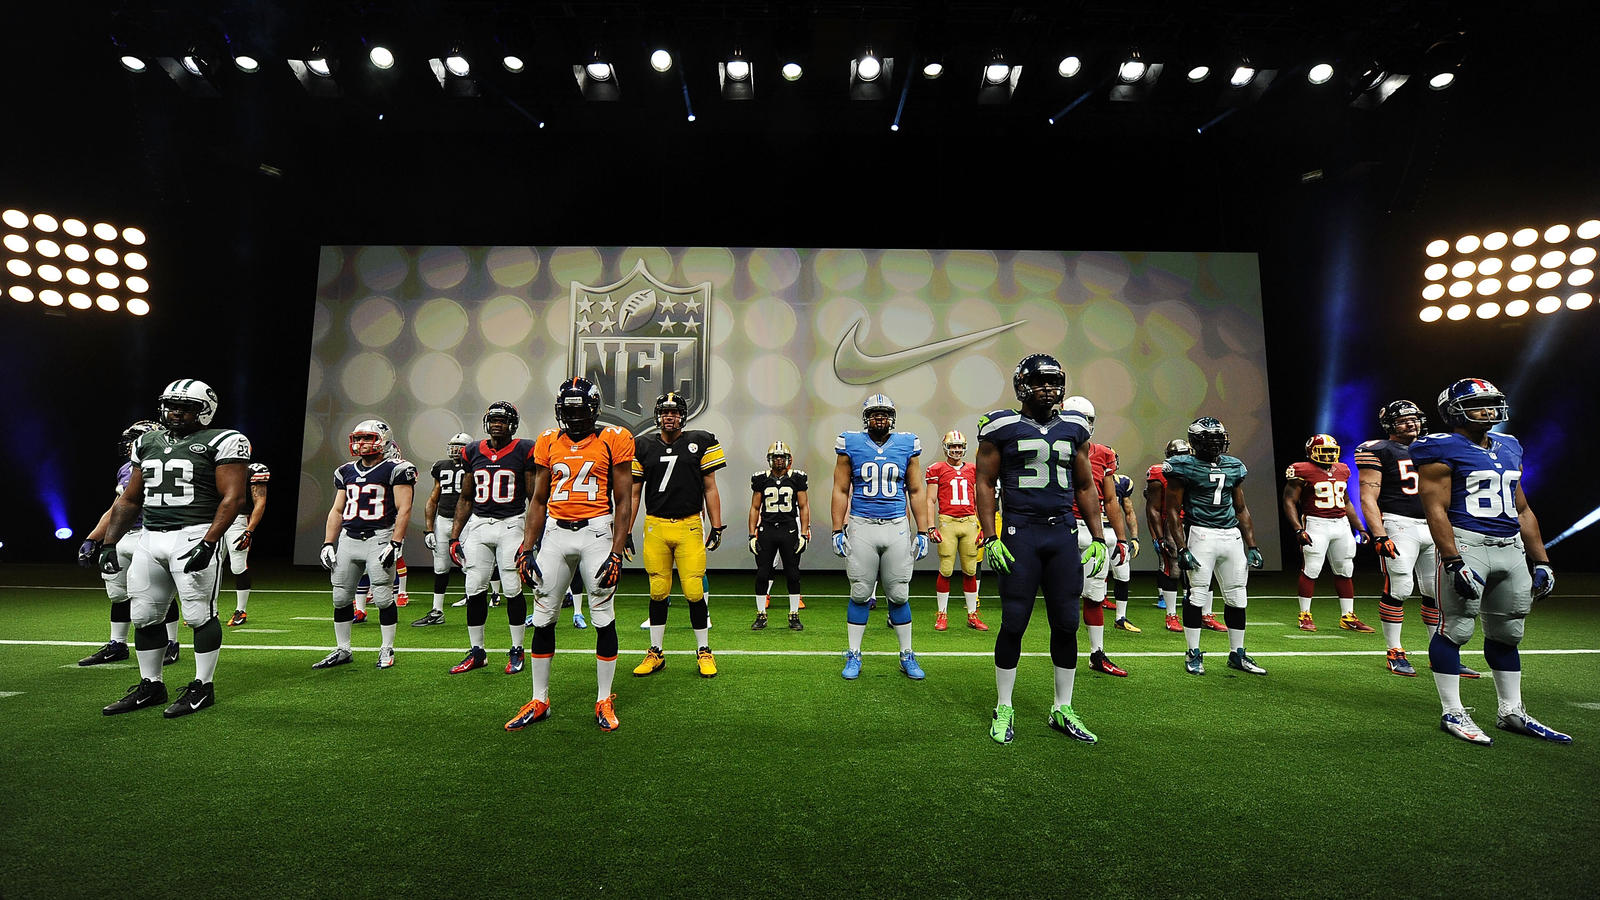 Nike_NFL_UniformUnveil_Players01_03APR2012